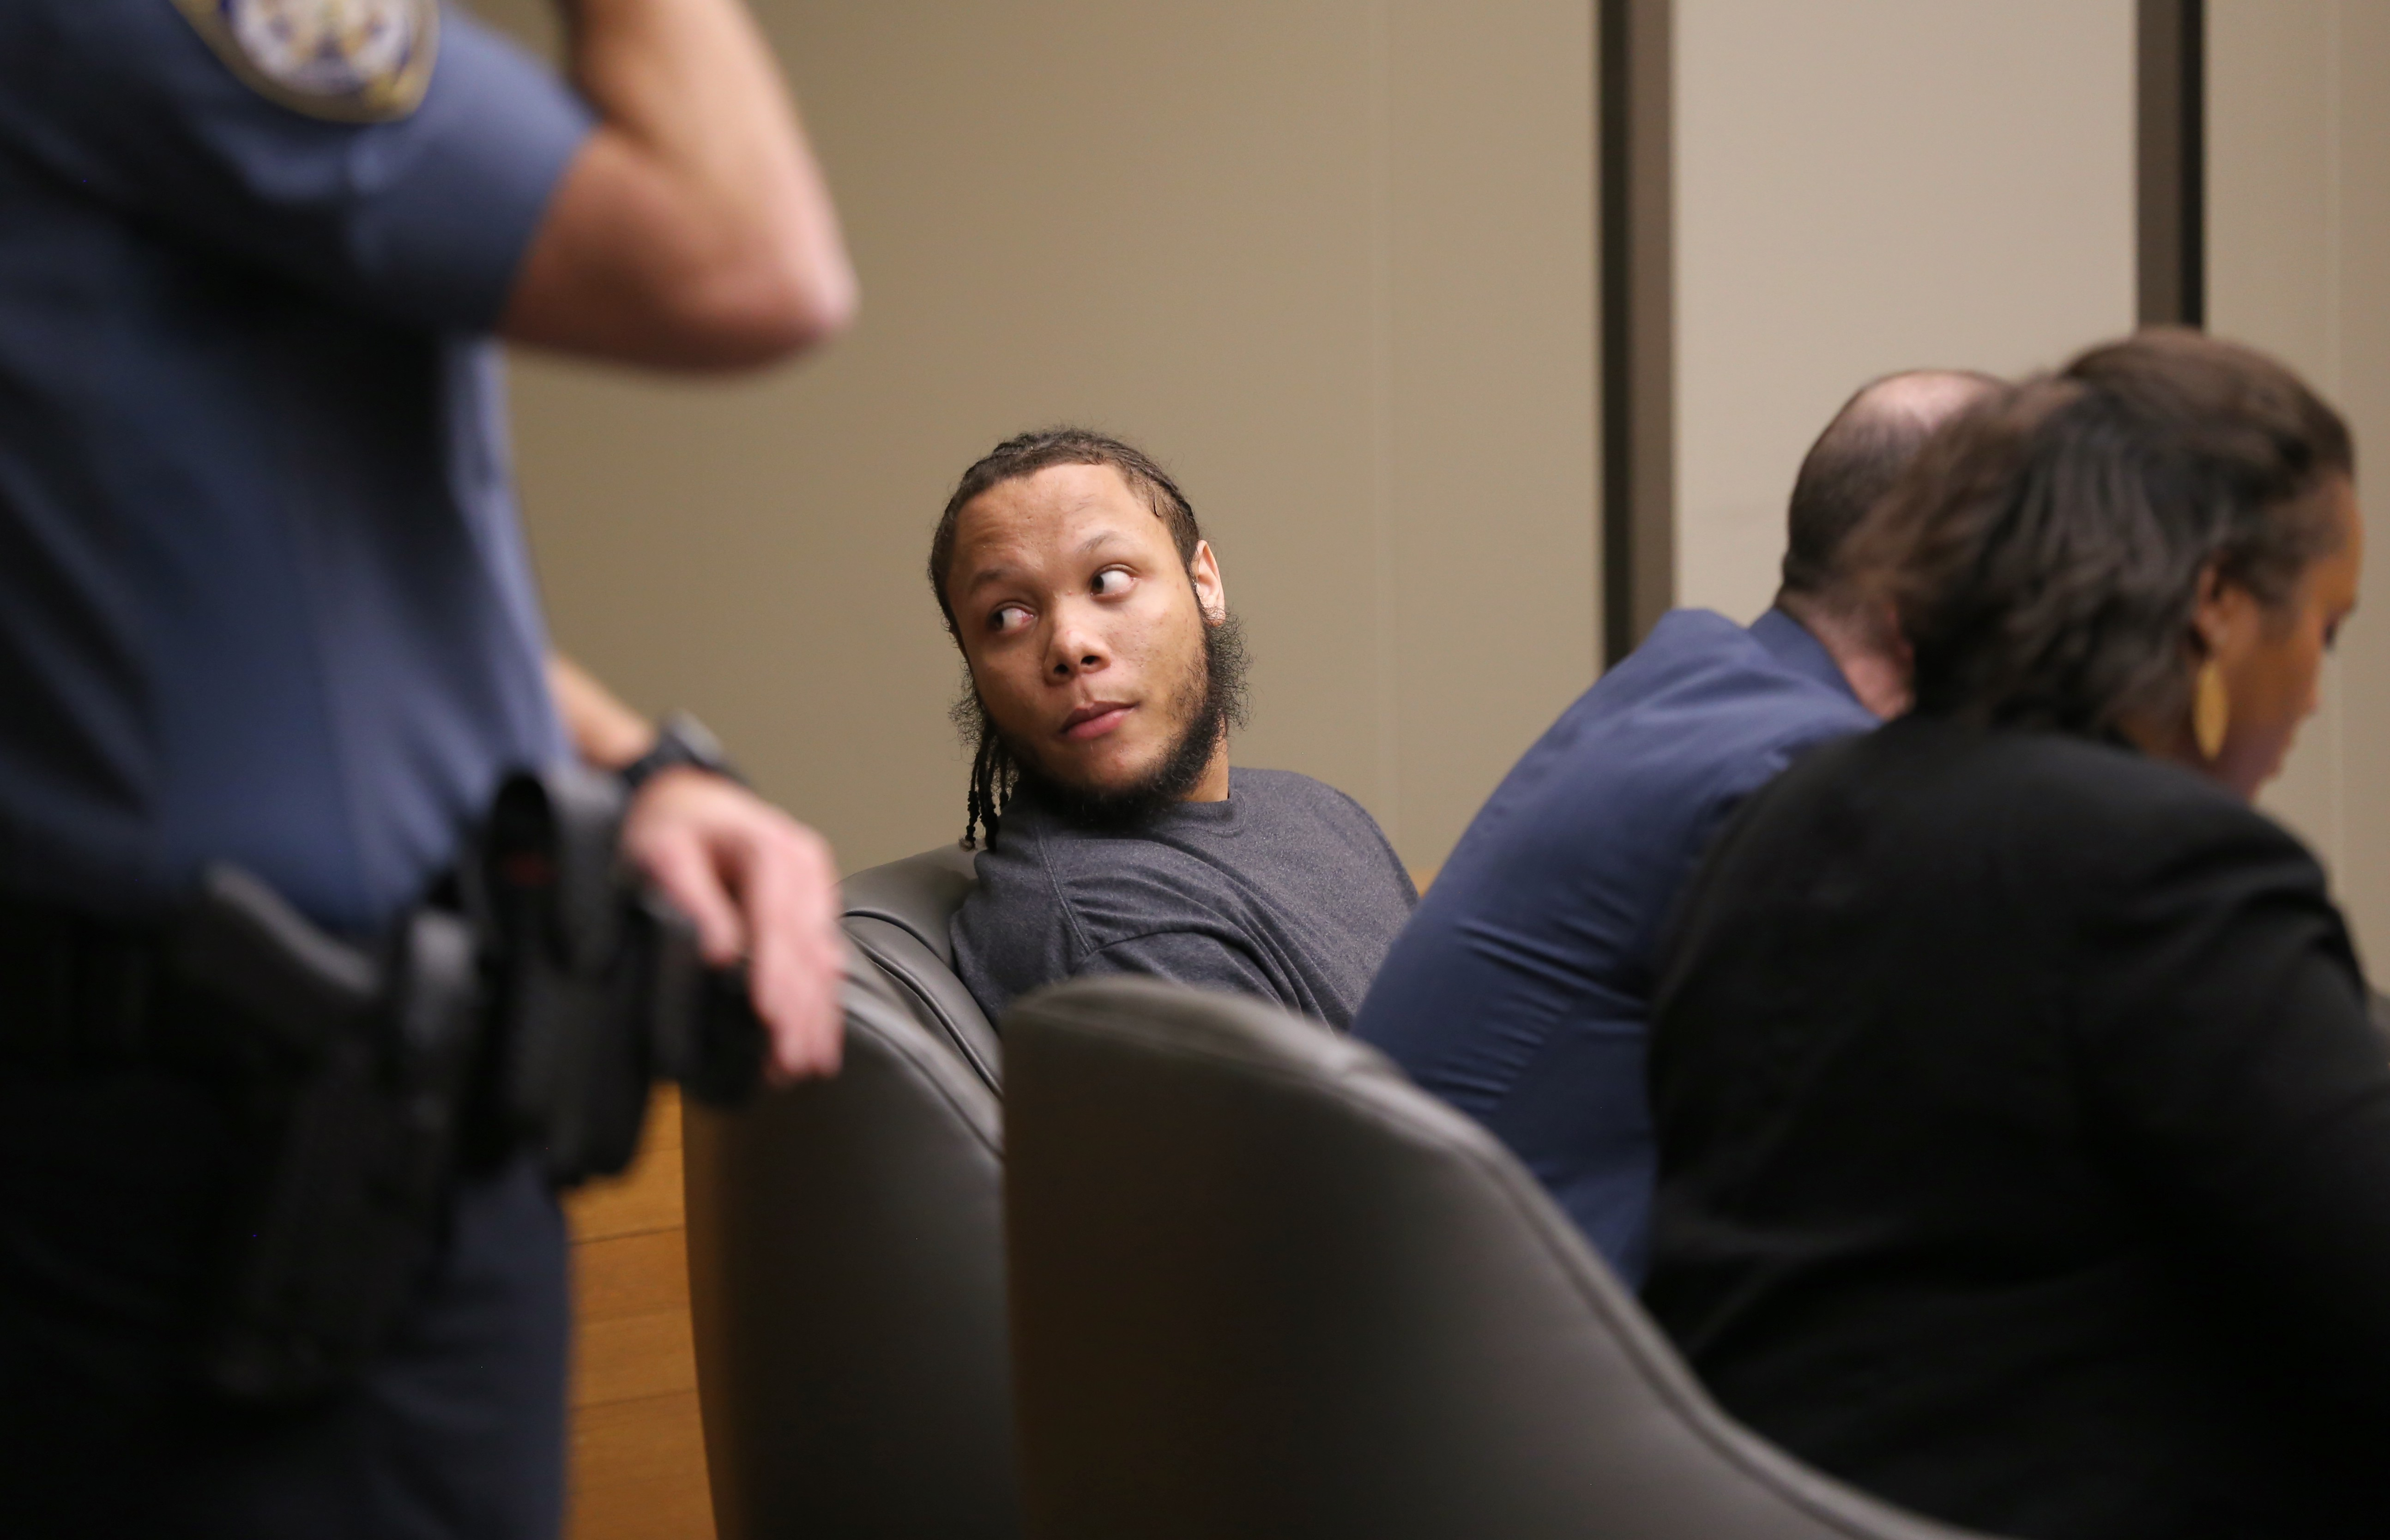 Jury selection will continue for third day in Massachusetts